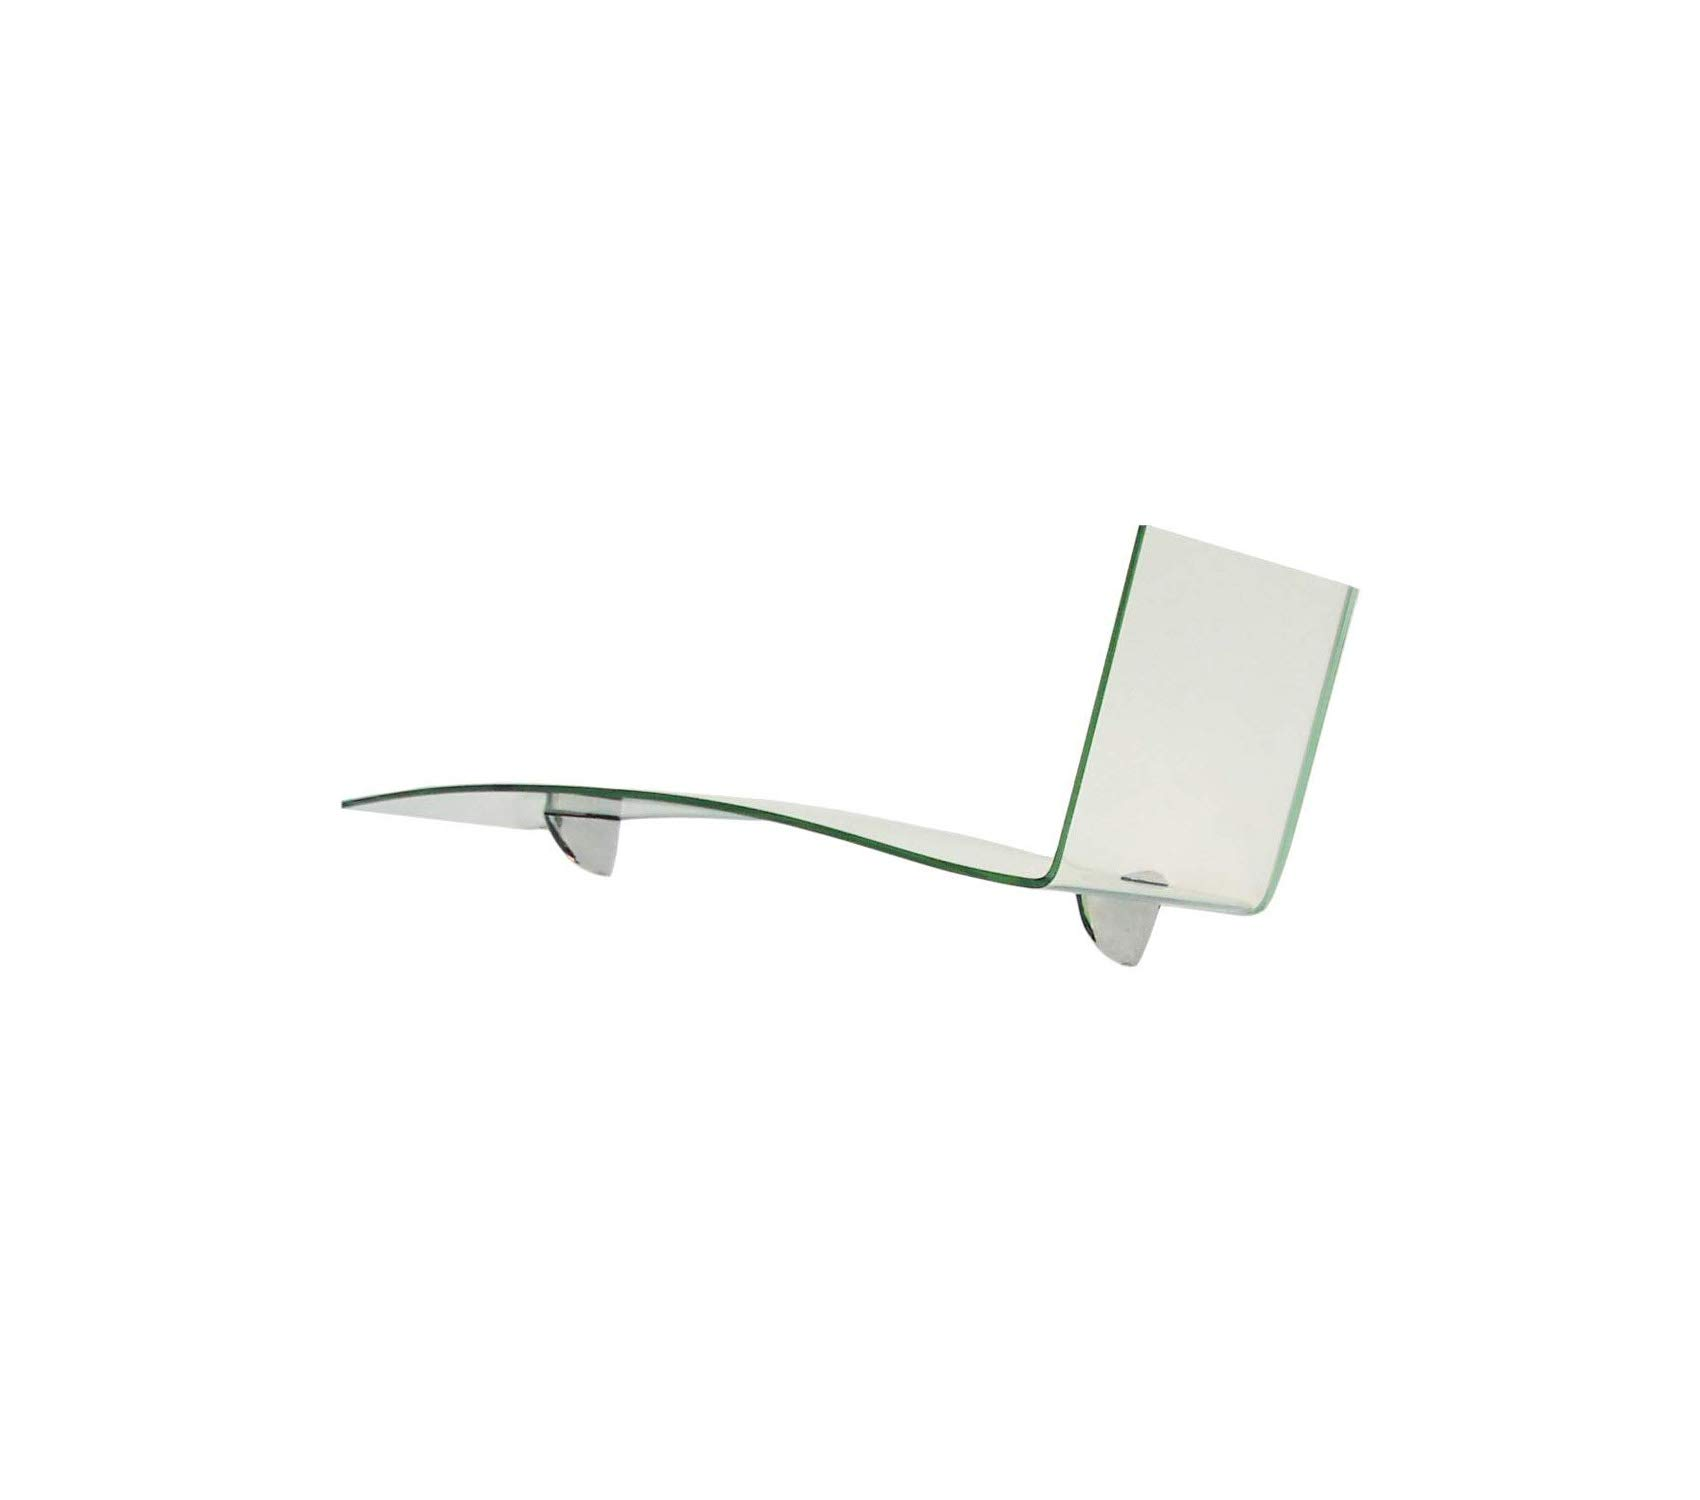 Fаb Glаss Аnd Mirrоr Premium Bent Chase Series 1/4'' Thick with Brackets Glass Shelf 31'' 1/2 Clear Storage